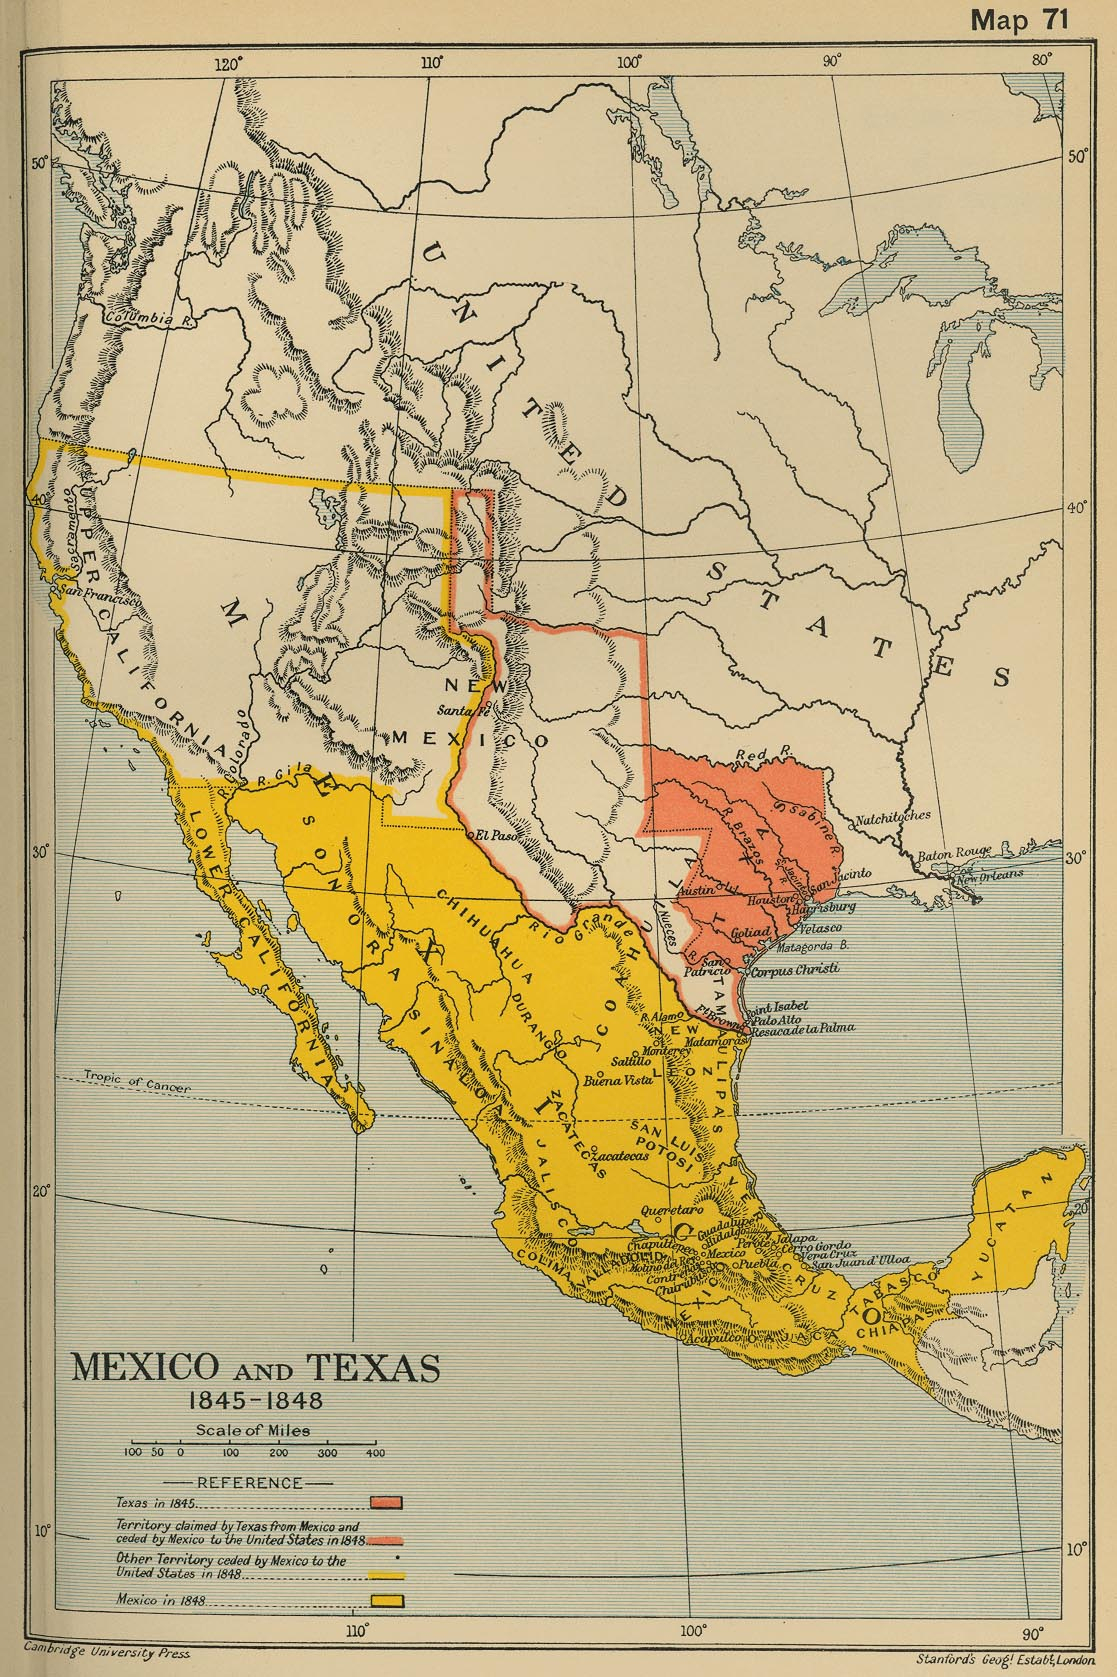 Map Of Mexico And Texas 1845-1848 - Texas Map 1800